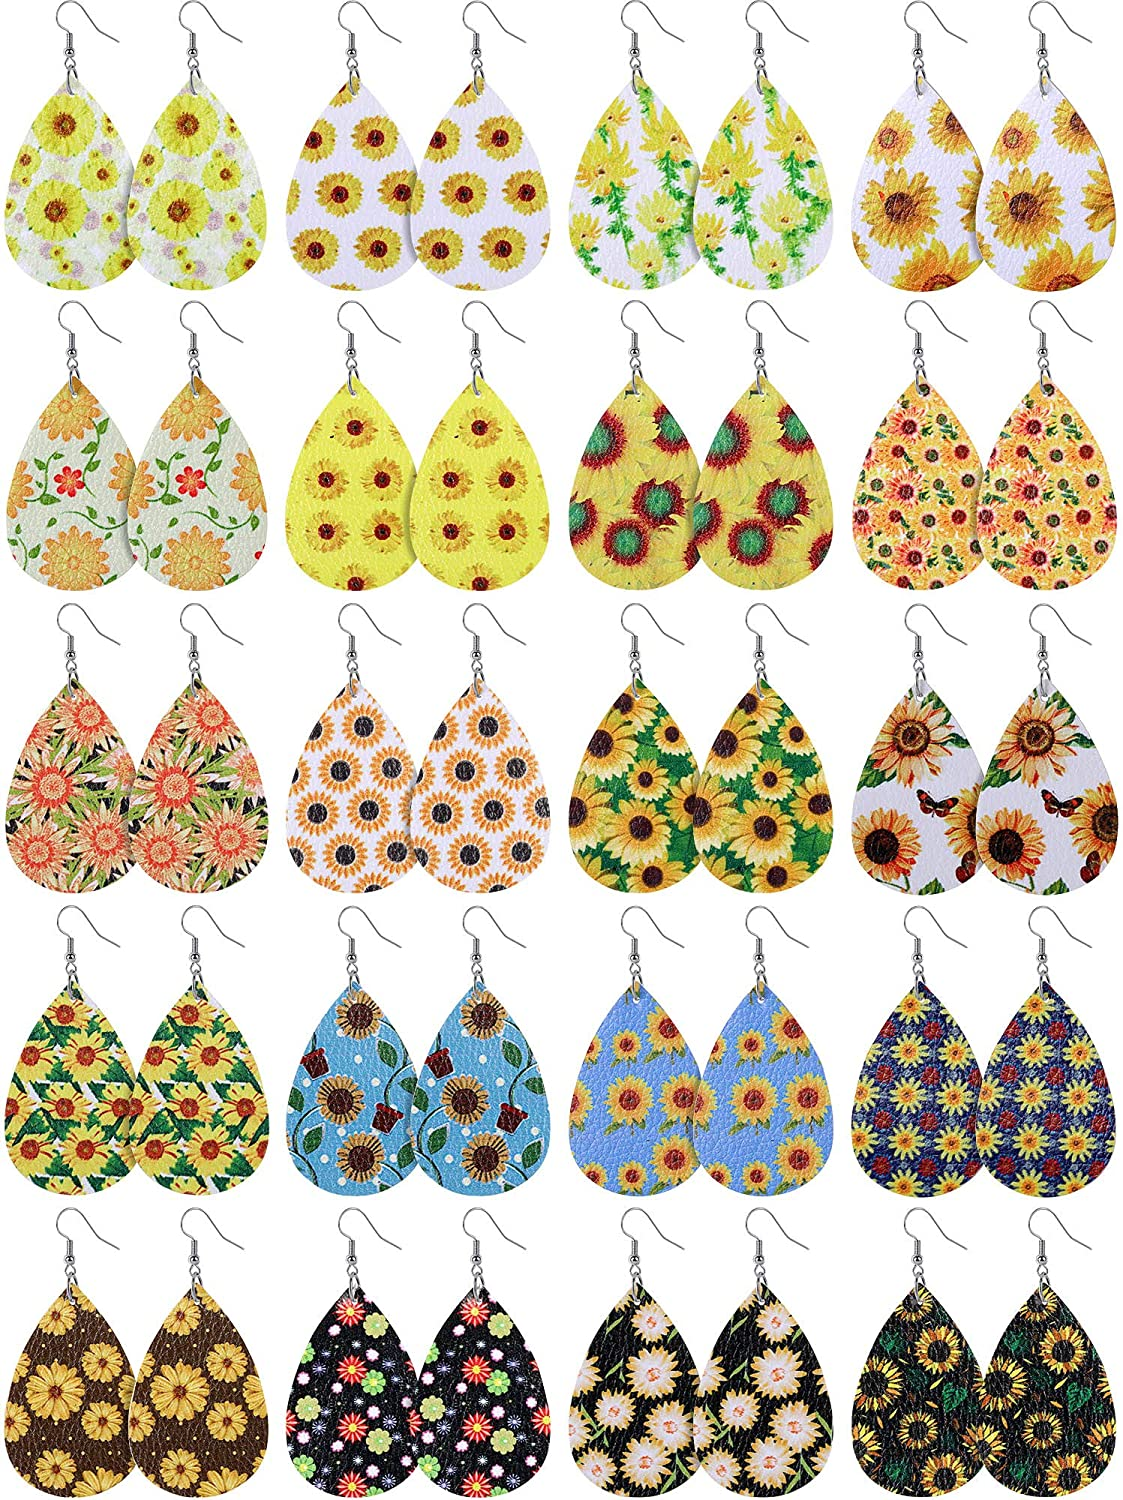 4 pairs Floral Patterned FAUX leather teardrops Sunflower Teardrops NOT Genuine Leather vegan leather teardrop shapes for earrings